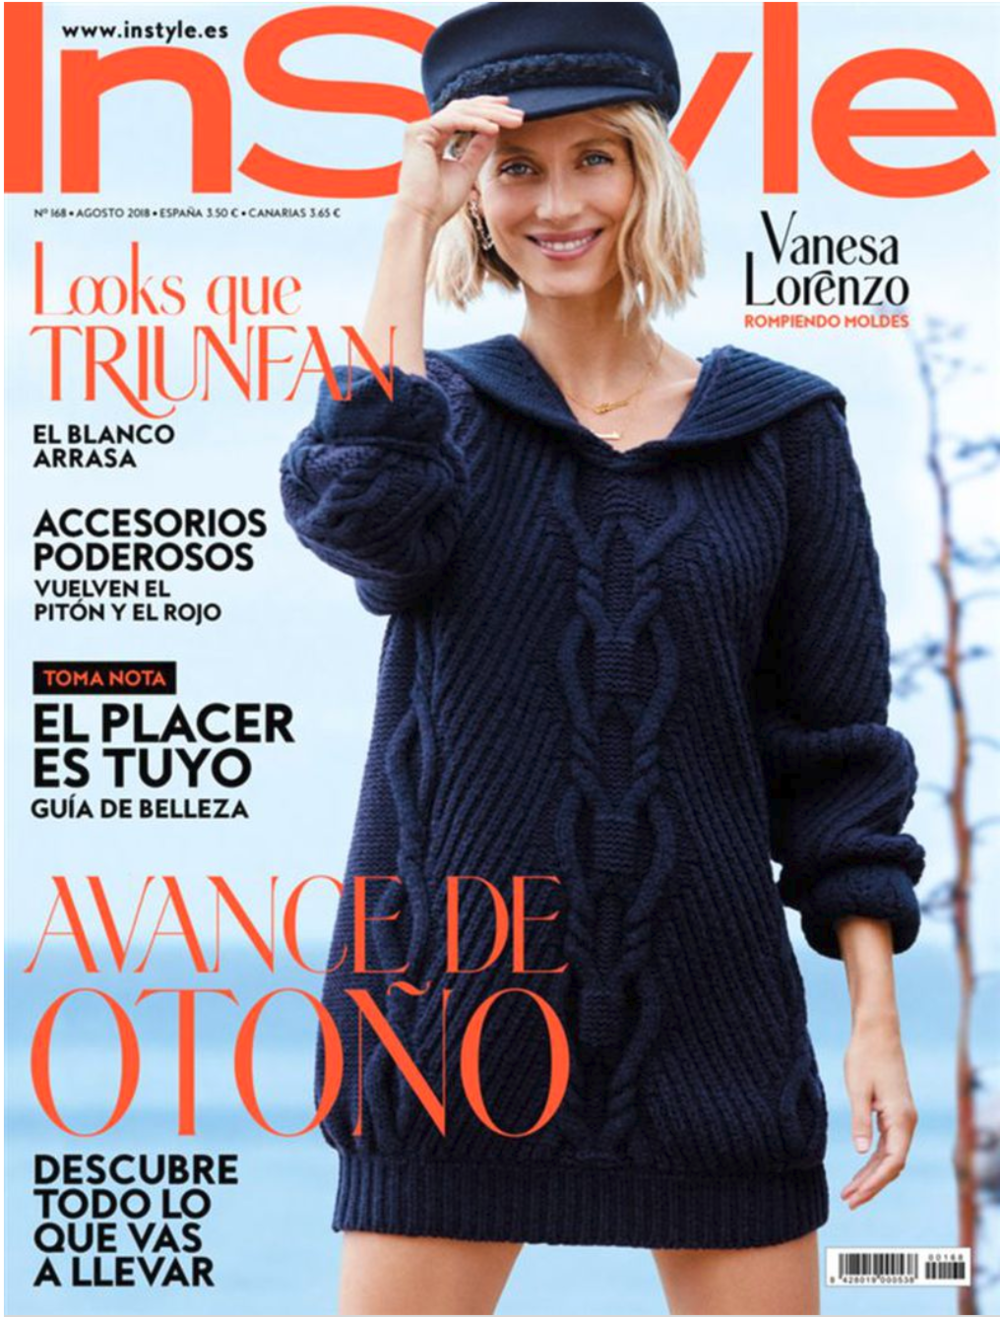 Vanesa Lorenzo for InStyle magazine.